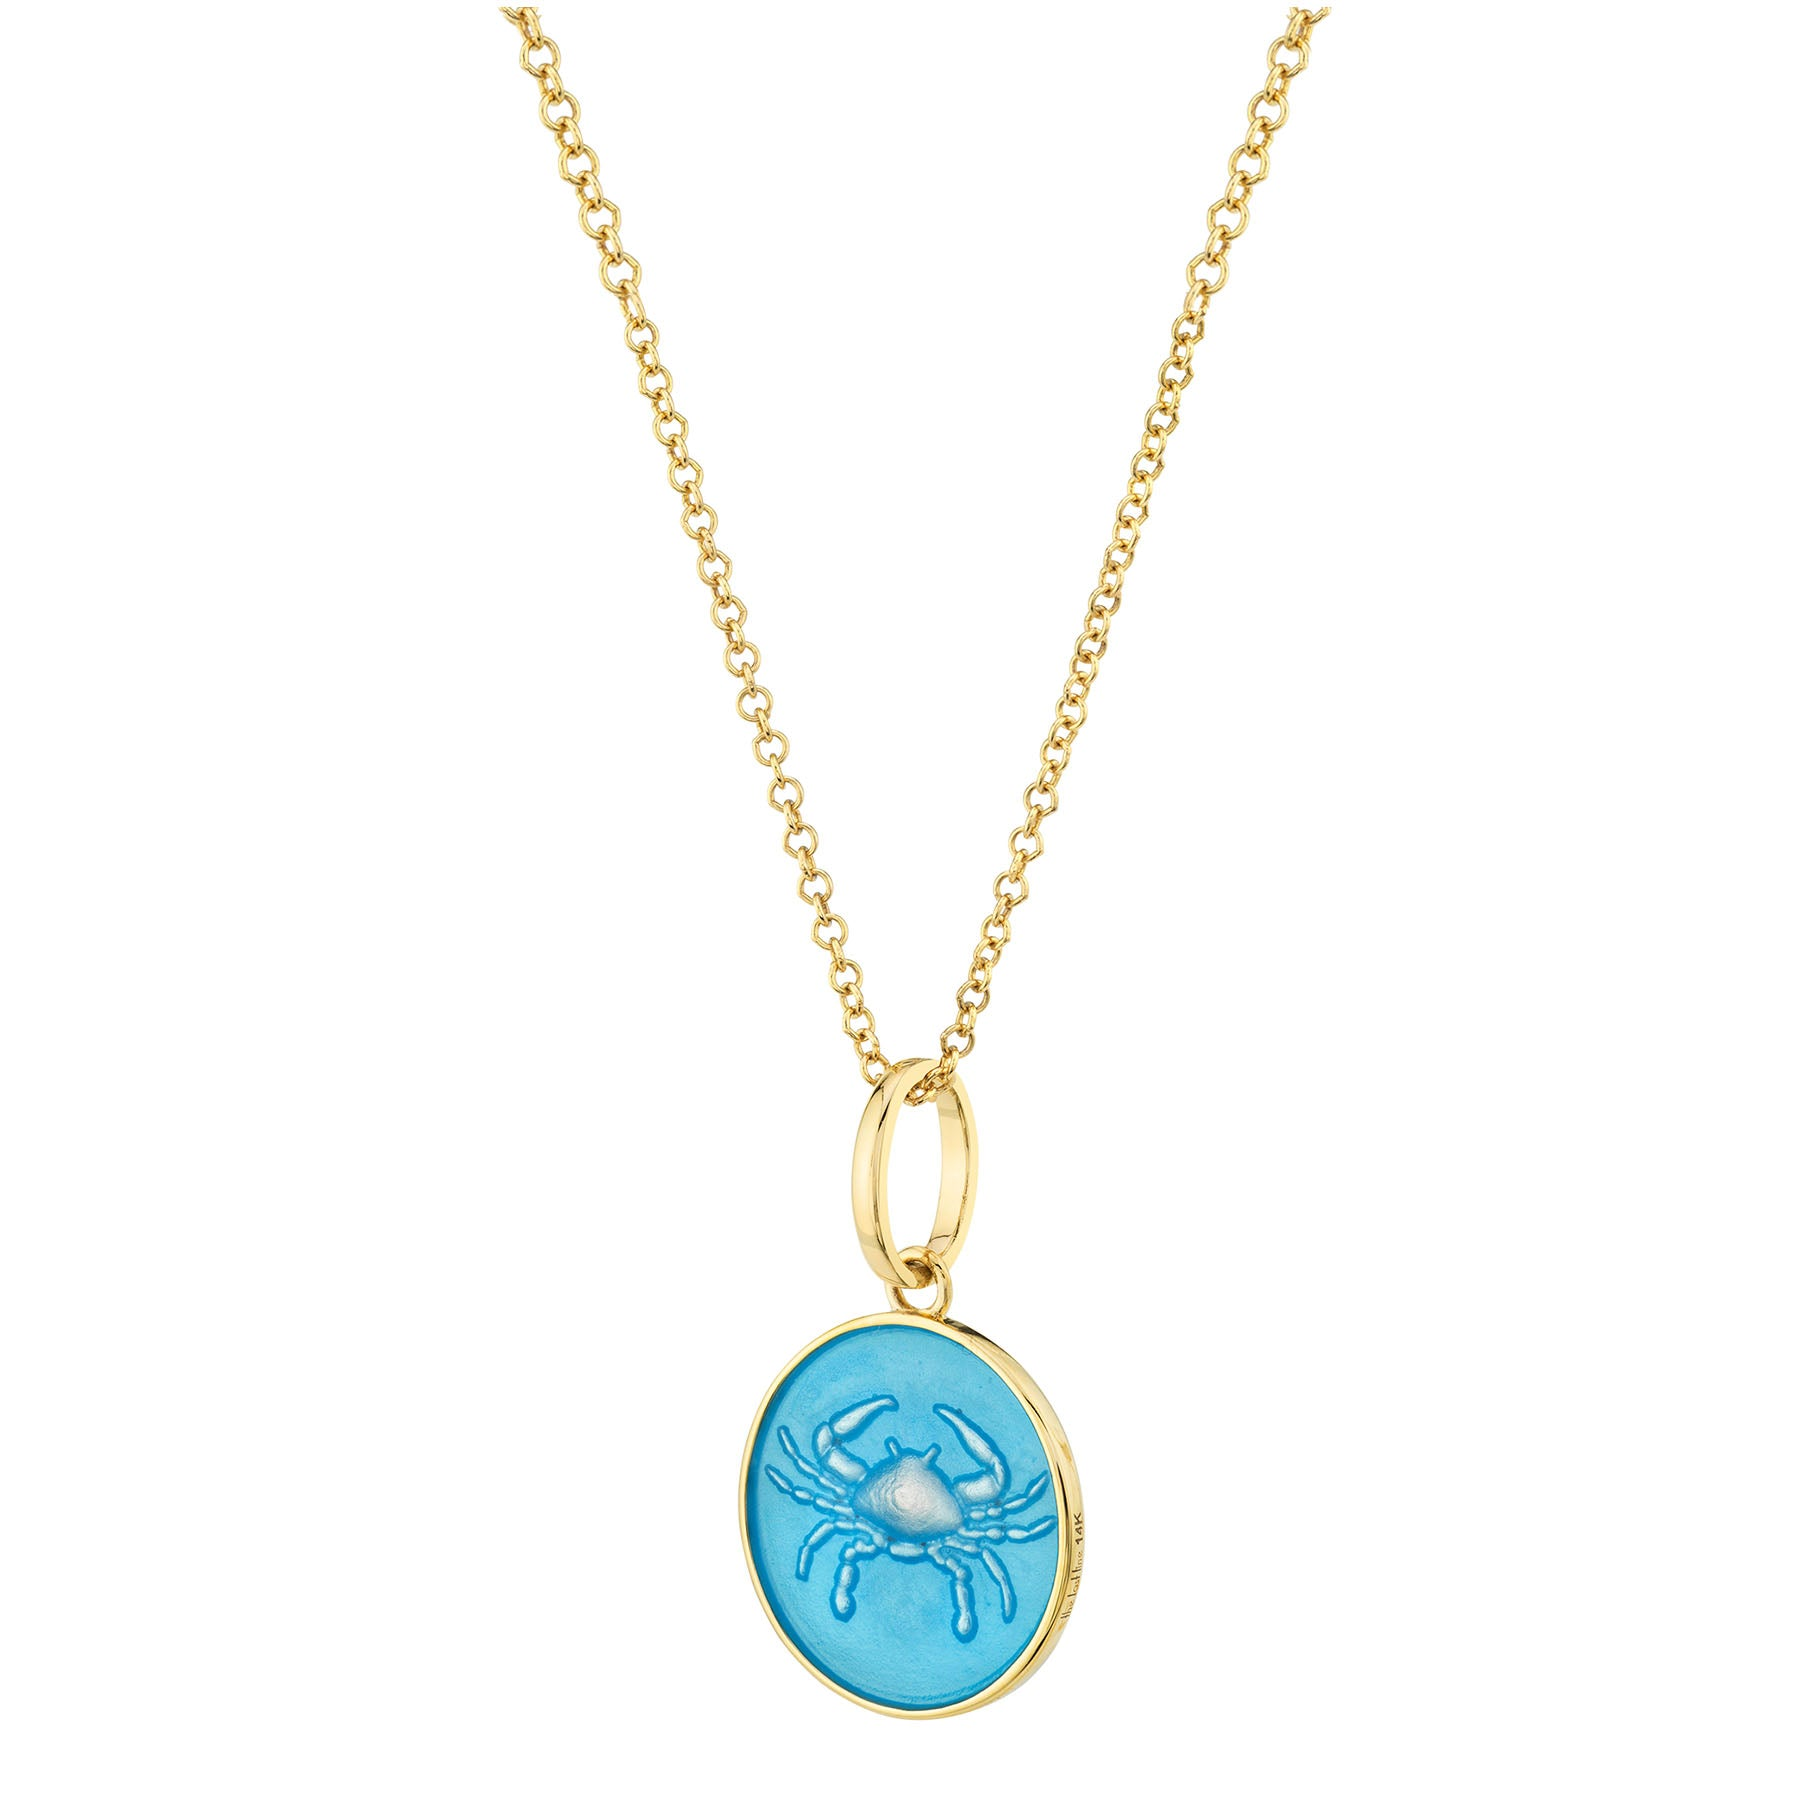 GOLD AND BLUE ENAMEL ZODIAC PENDANT